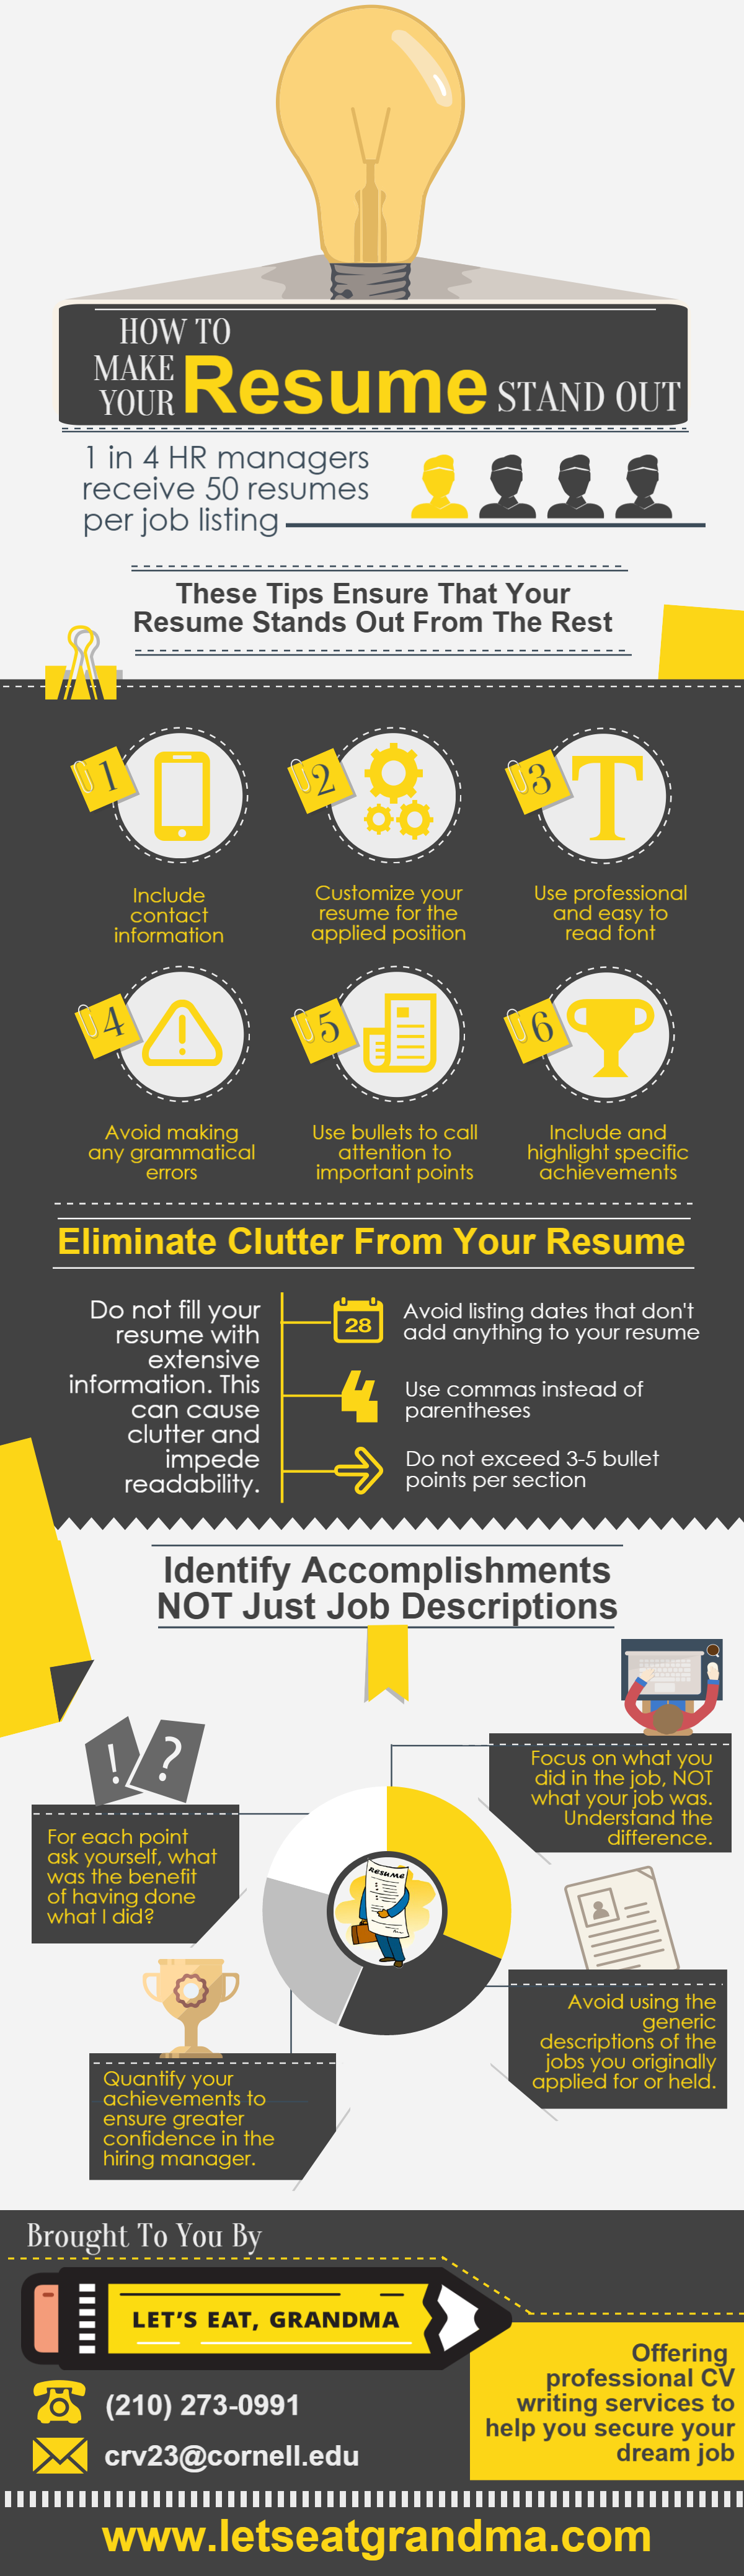 How To Make Your Resume Stand Out Visual